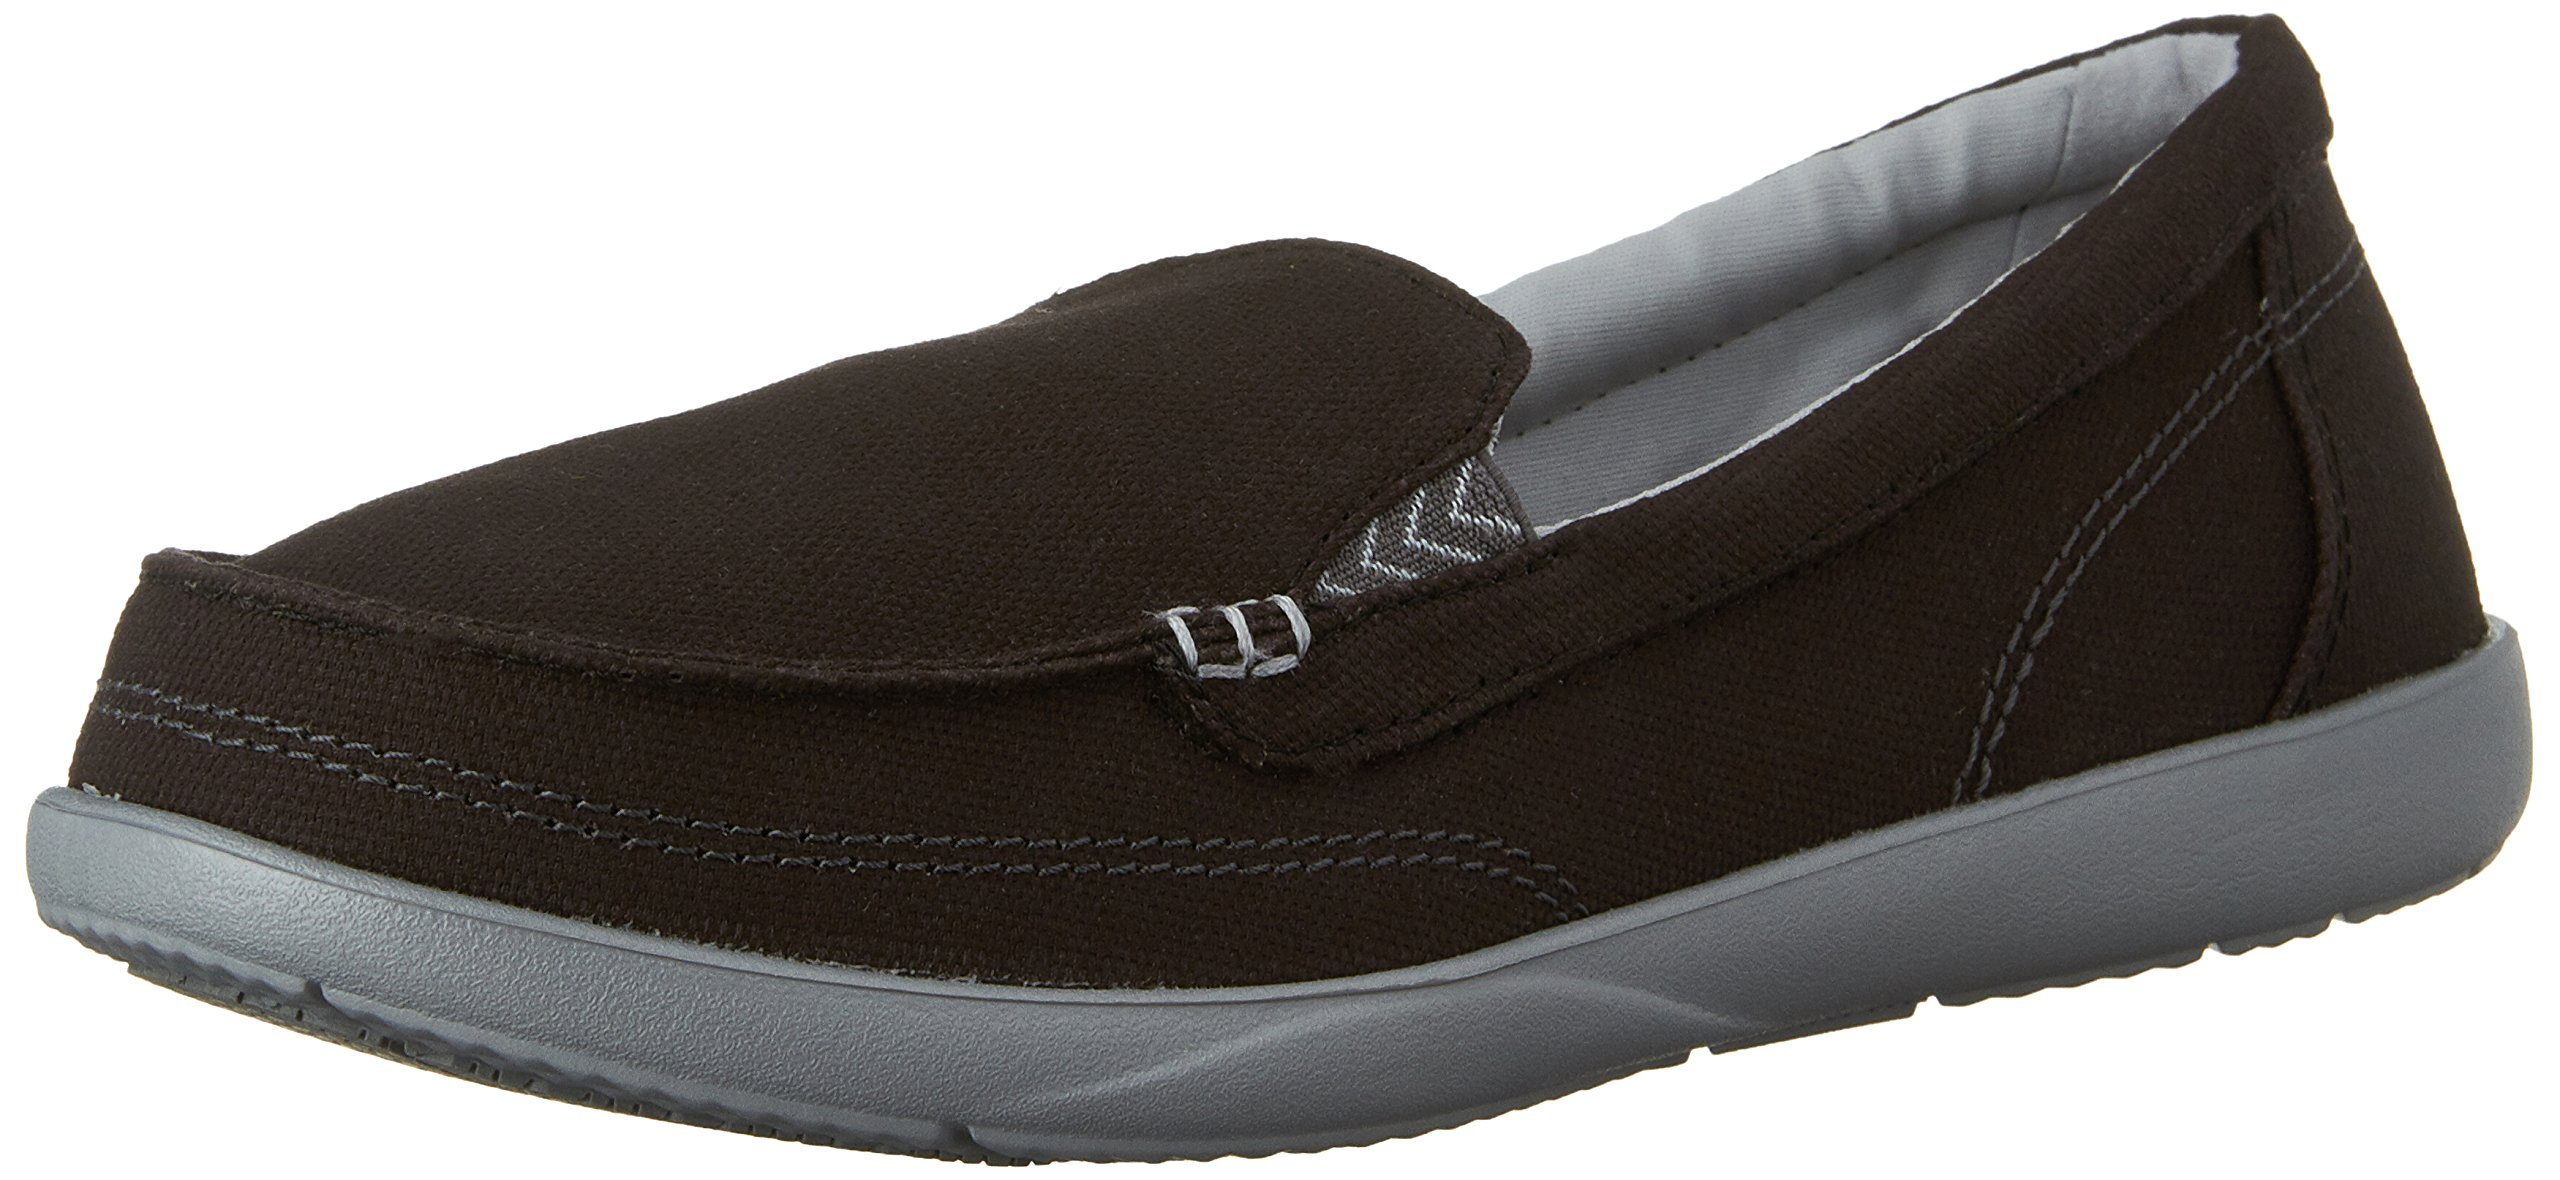 crocs Women's Walu II Canvas Loafer, Black/Graphite, 8 M US